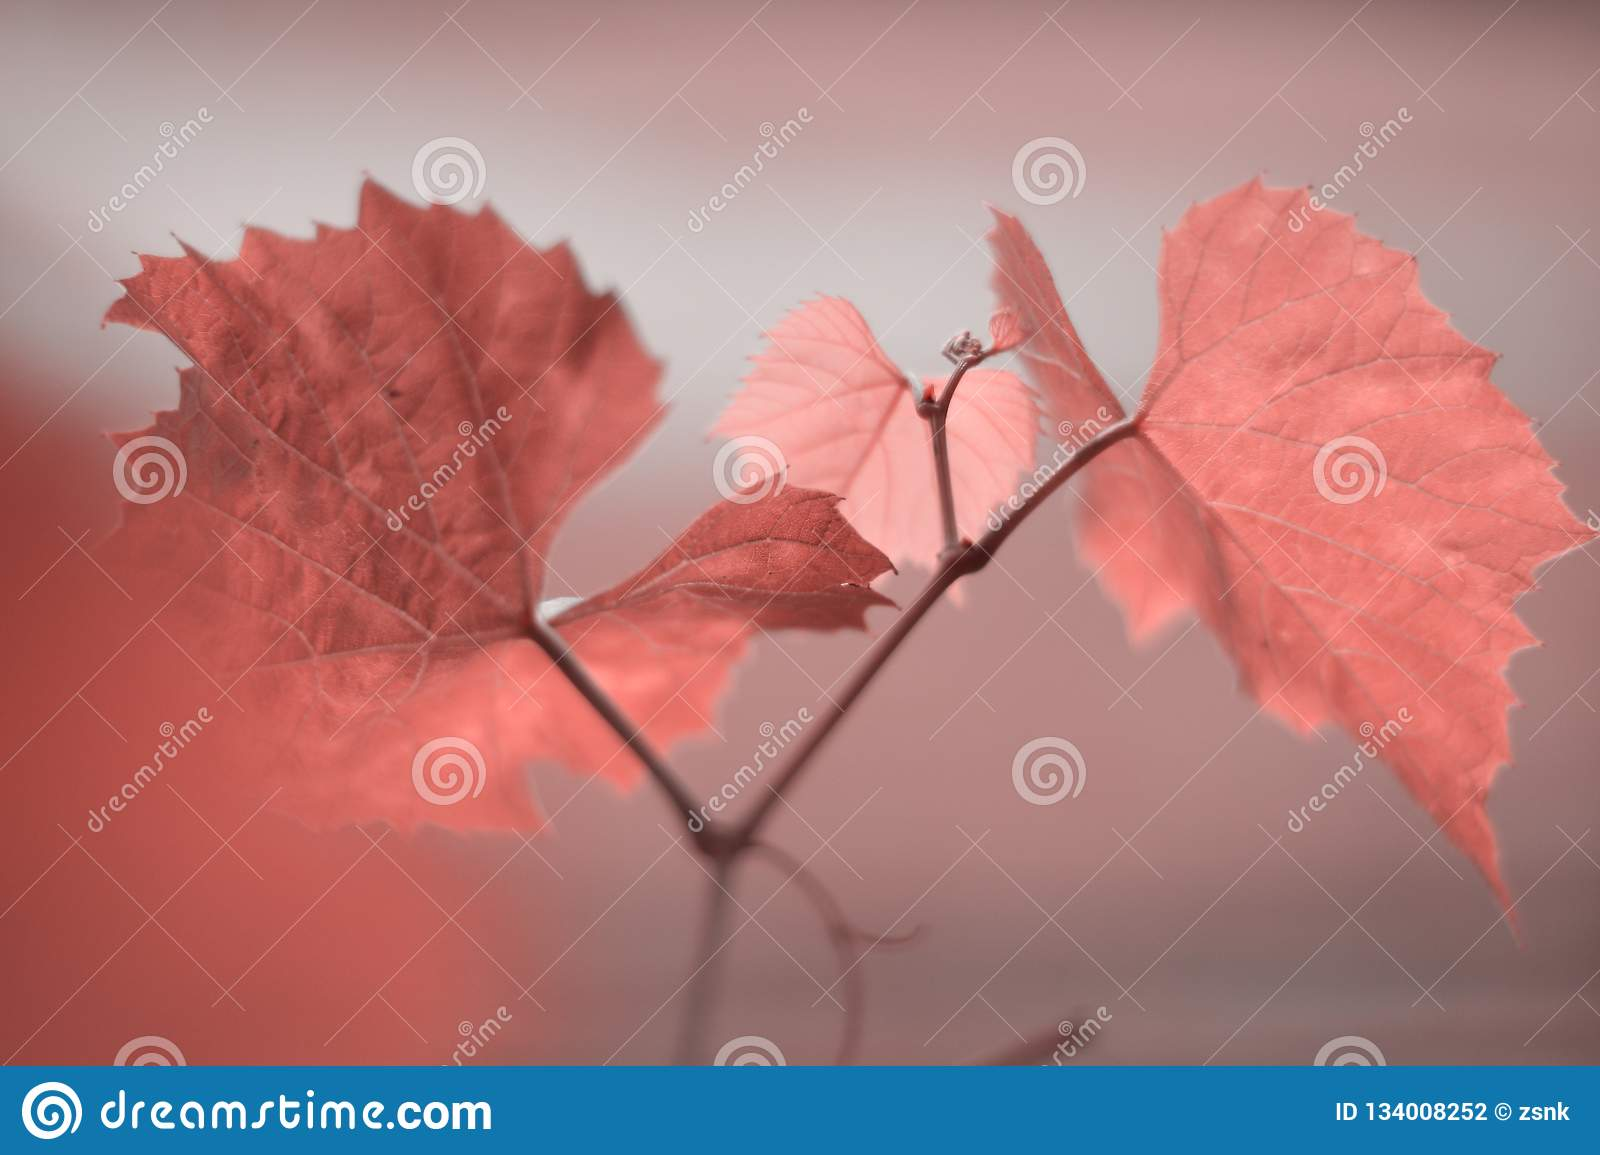 Grape leaves in colour of the year 2019 Pantone - Living Coral